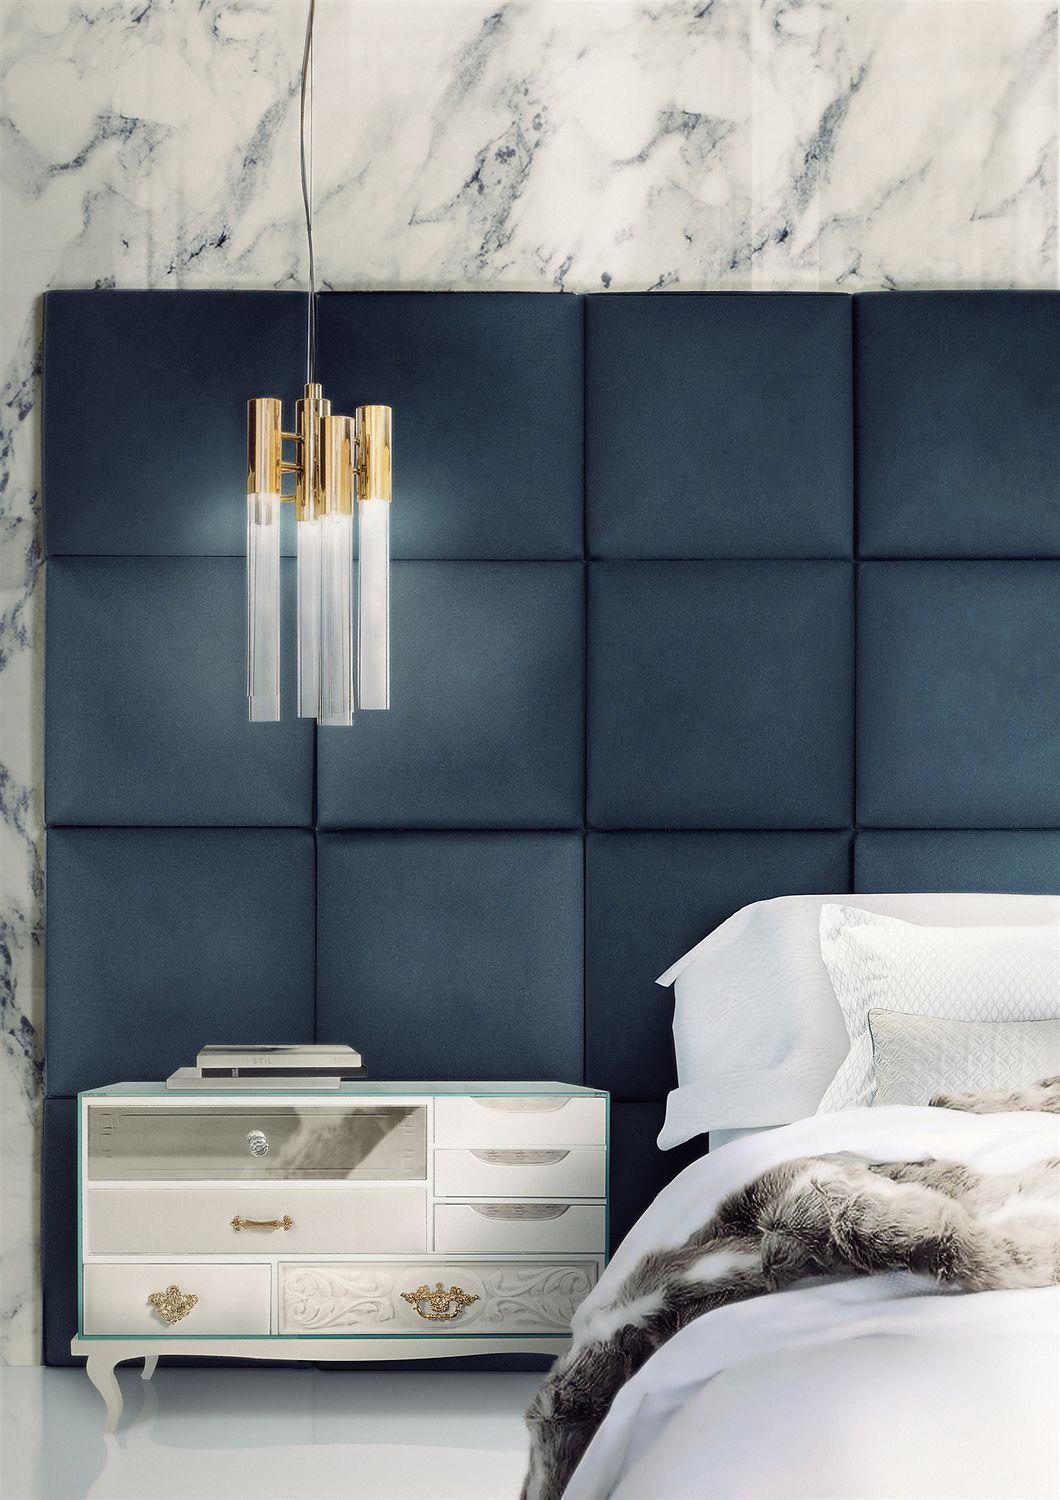 Light Up Your Bedroom With These Amazing Lighting Trends